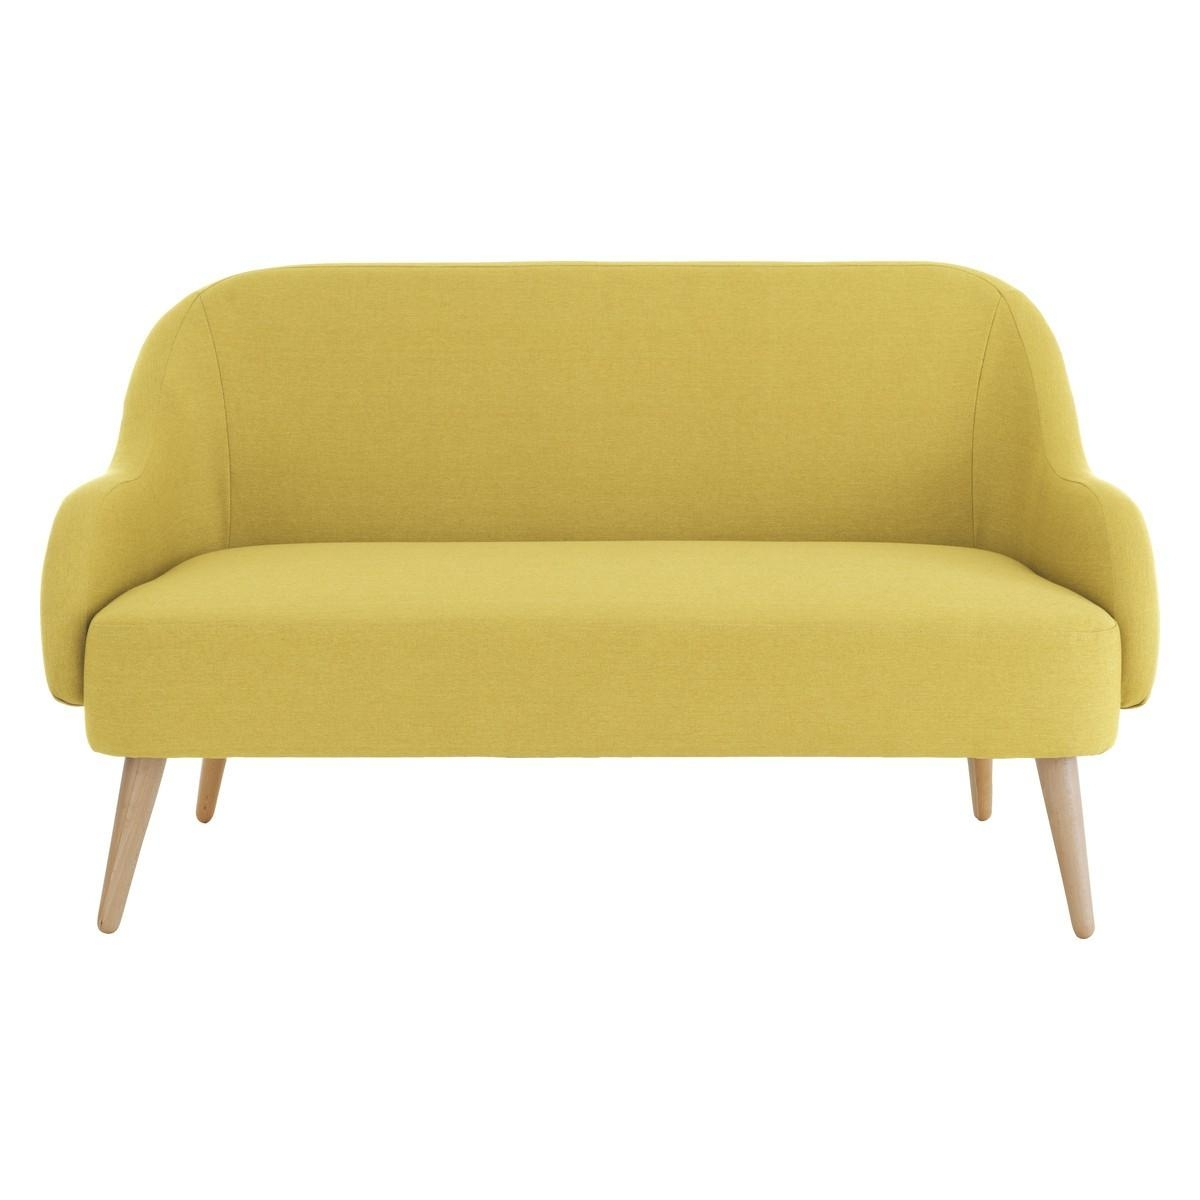 Momo Saffron Yellow Fabric 2 Seater Sofa | Buy Now At Habitat Uk Regarding Yellow Sofa Chairs (Image 13 of 20)